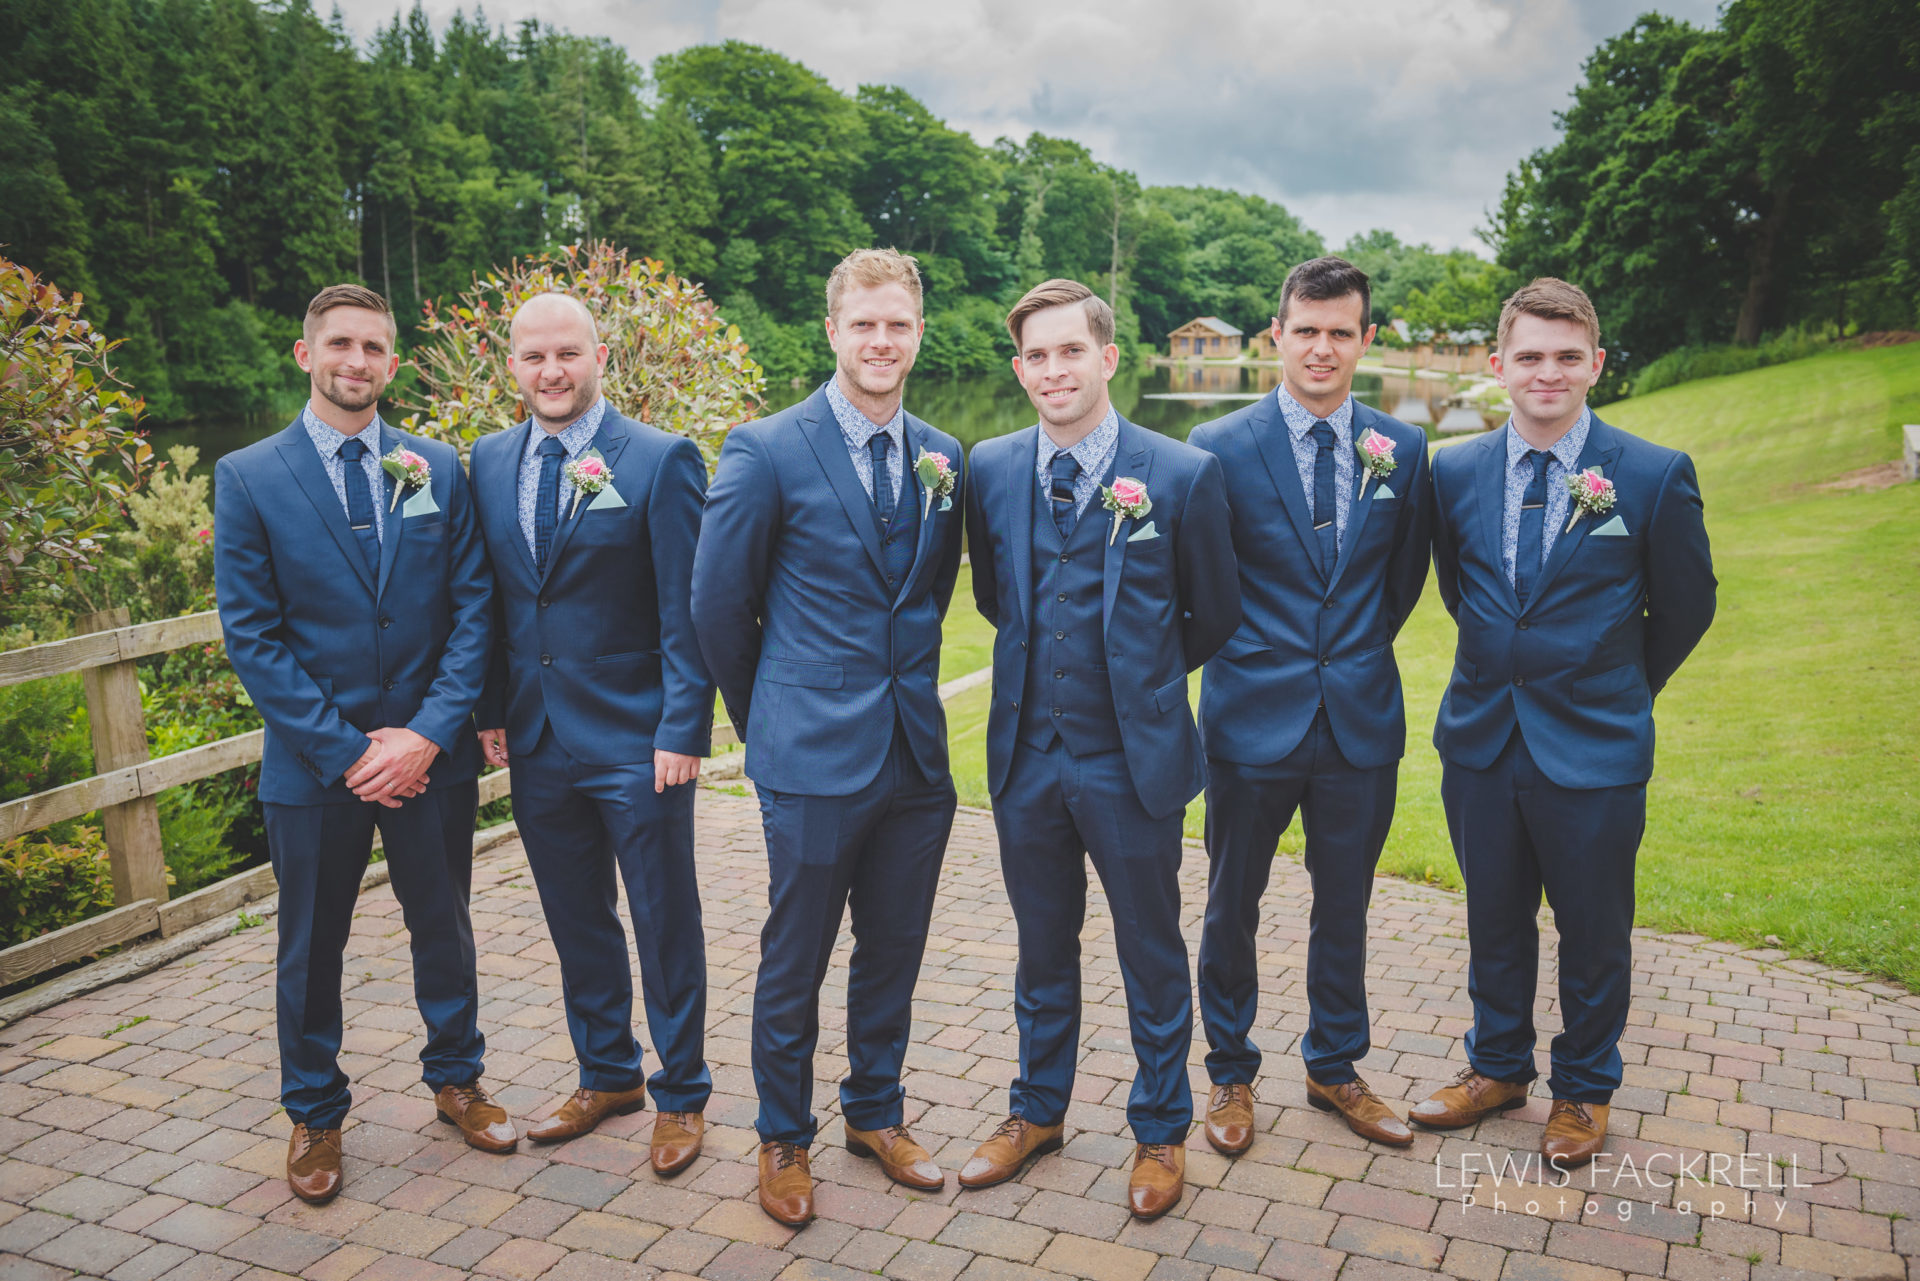 Lewis-Fackrell-Photography-Wedding-Photographer-Cardiff-Swansea-Bristol-Newport-Pre-wedding-photoshoot-cerian-dan-canada-lake-lodge-llantrisant--47